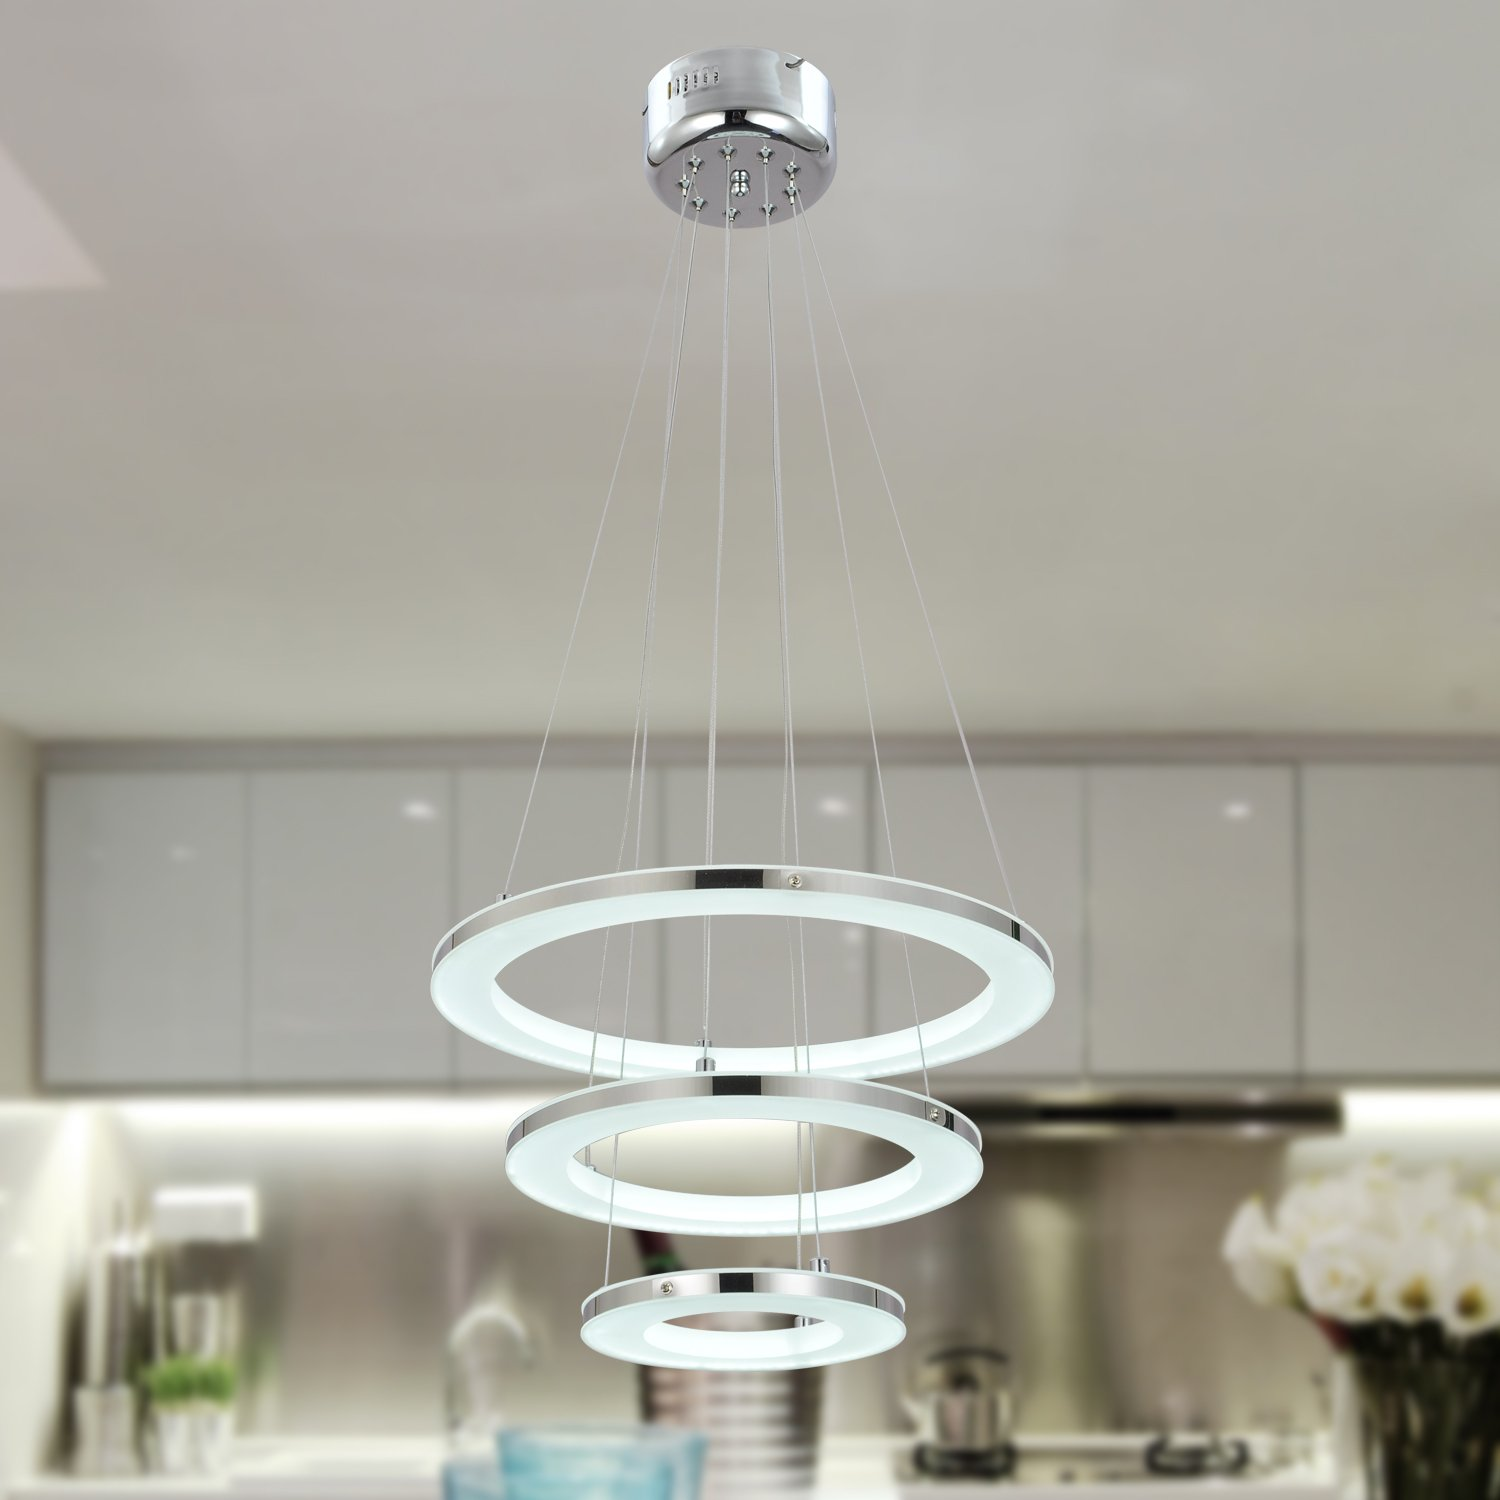 Unitary brand modern warm white led acrylic pendant light with 3 unitary brand modern warm white led acrylic pendant light with 3 rings max 33w chrome finish amazon aloadofball Choice Image